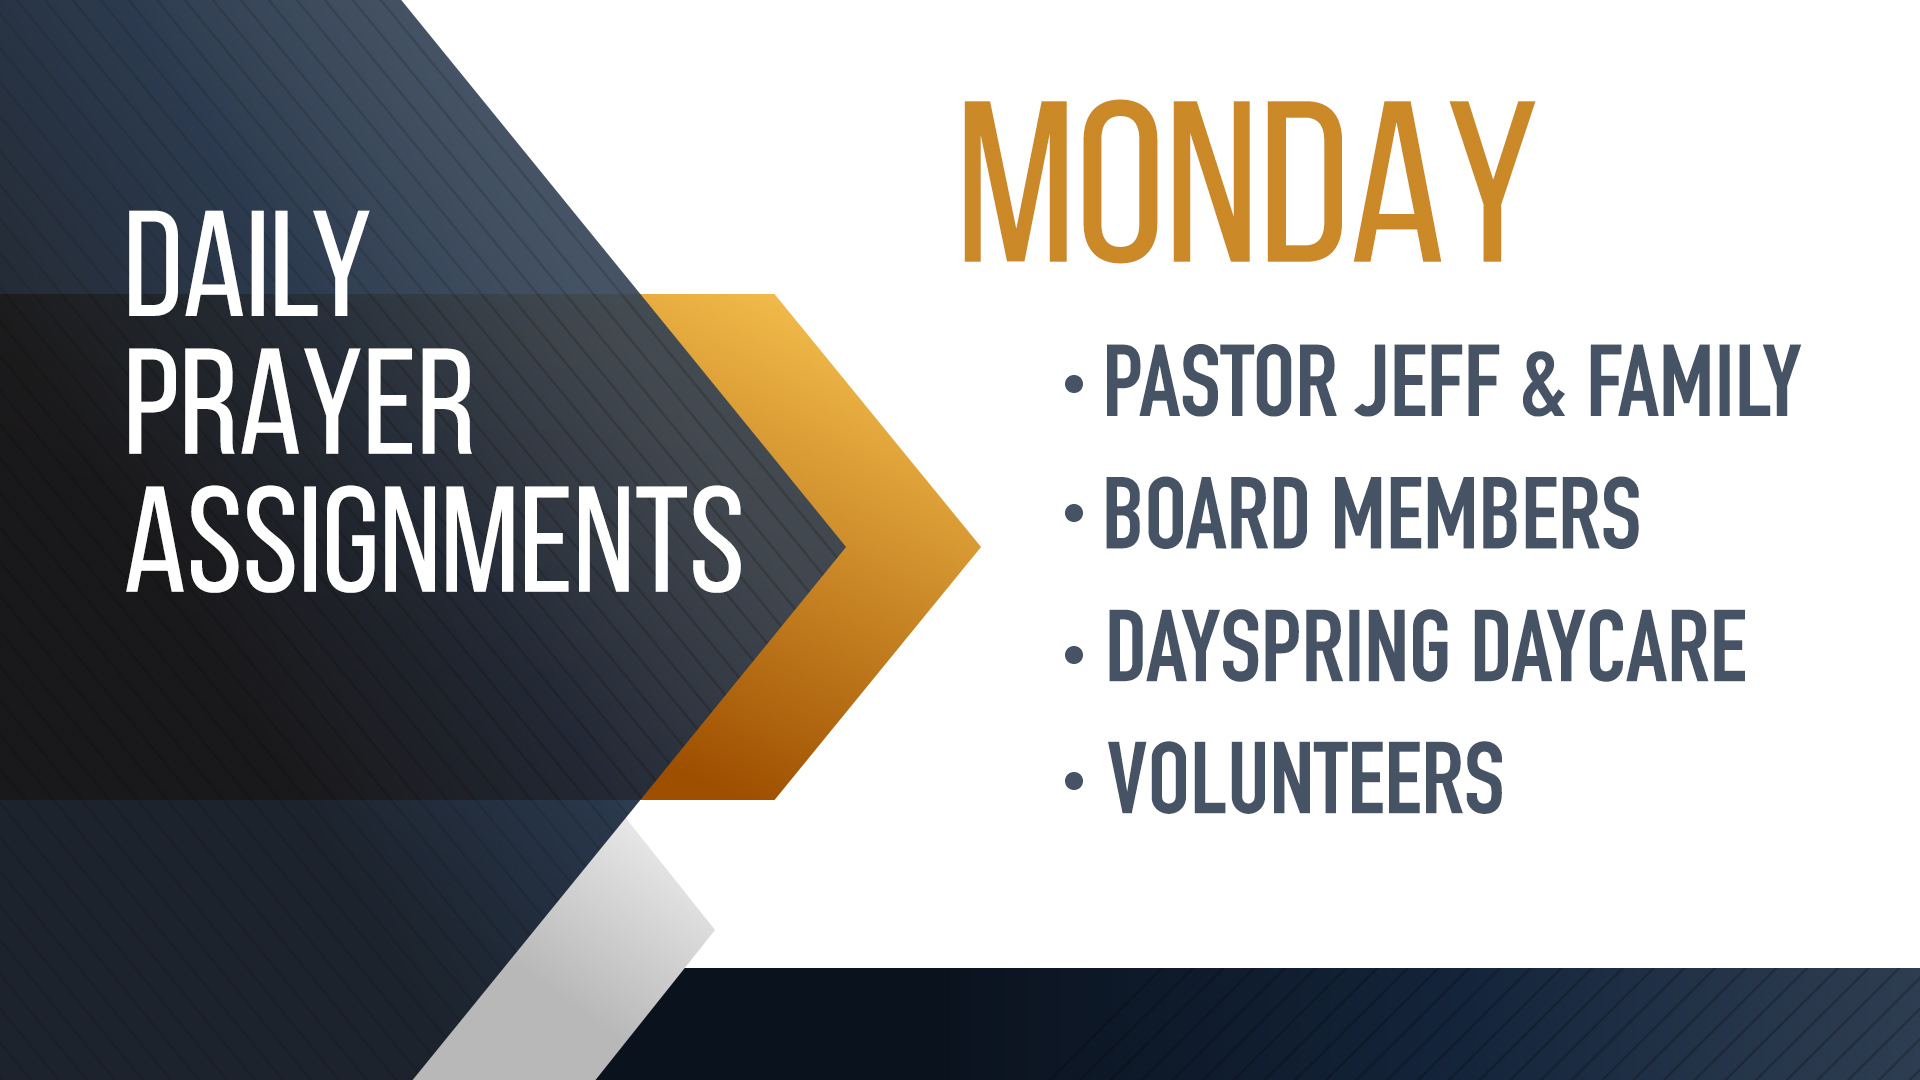 DailyPrayerAssignments_Monday_2018.jpg